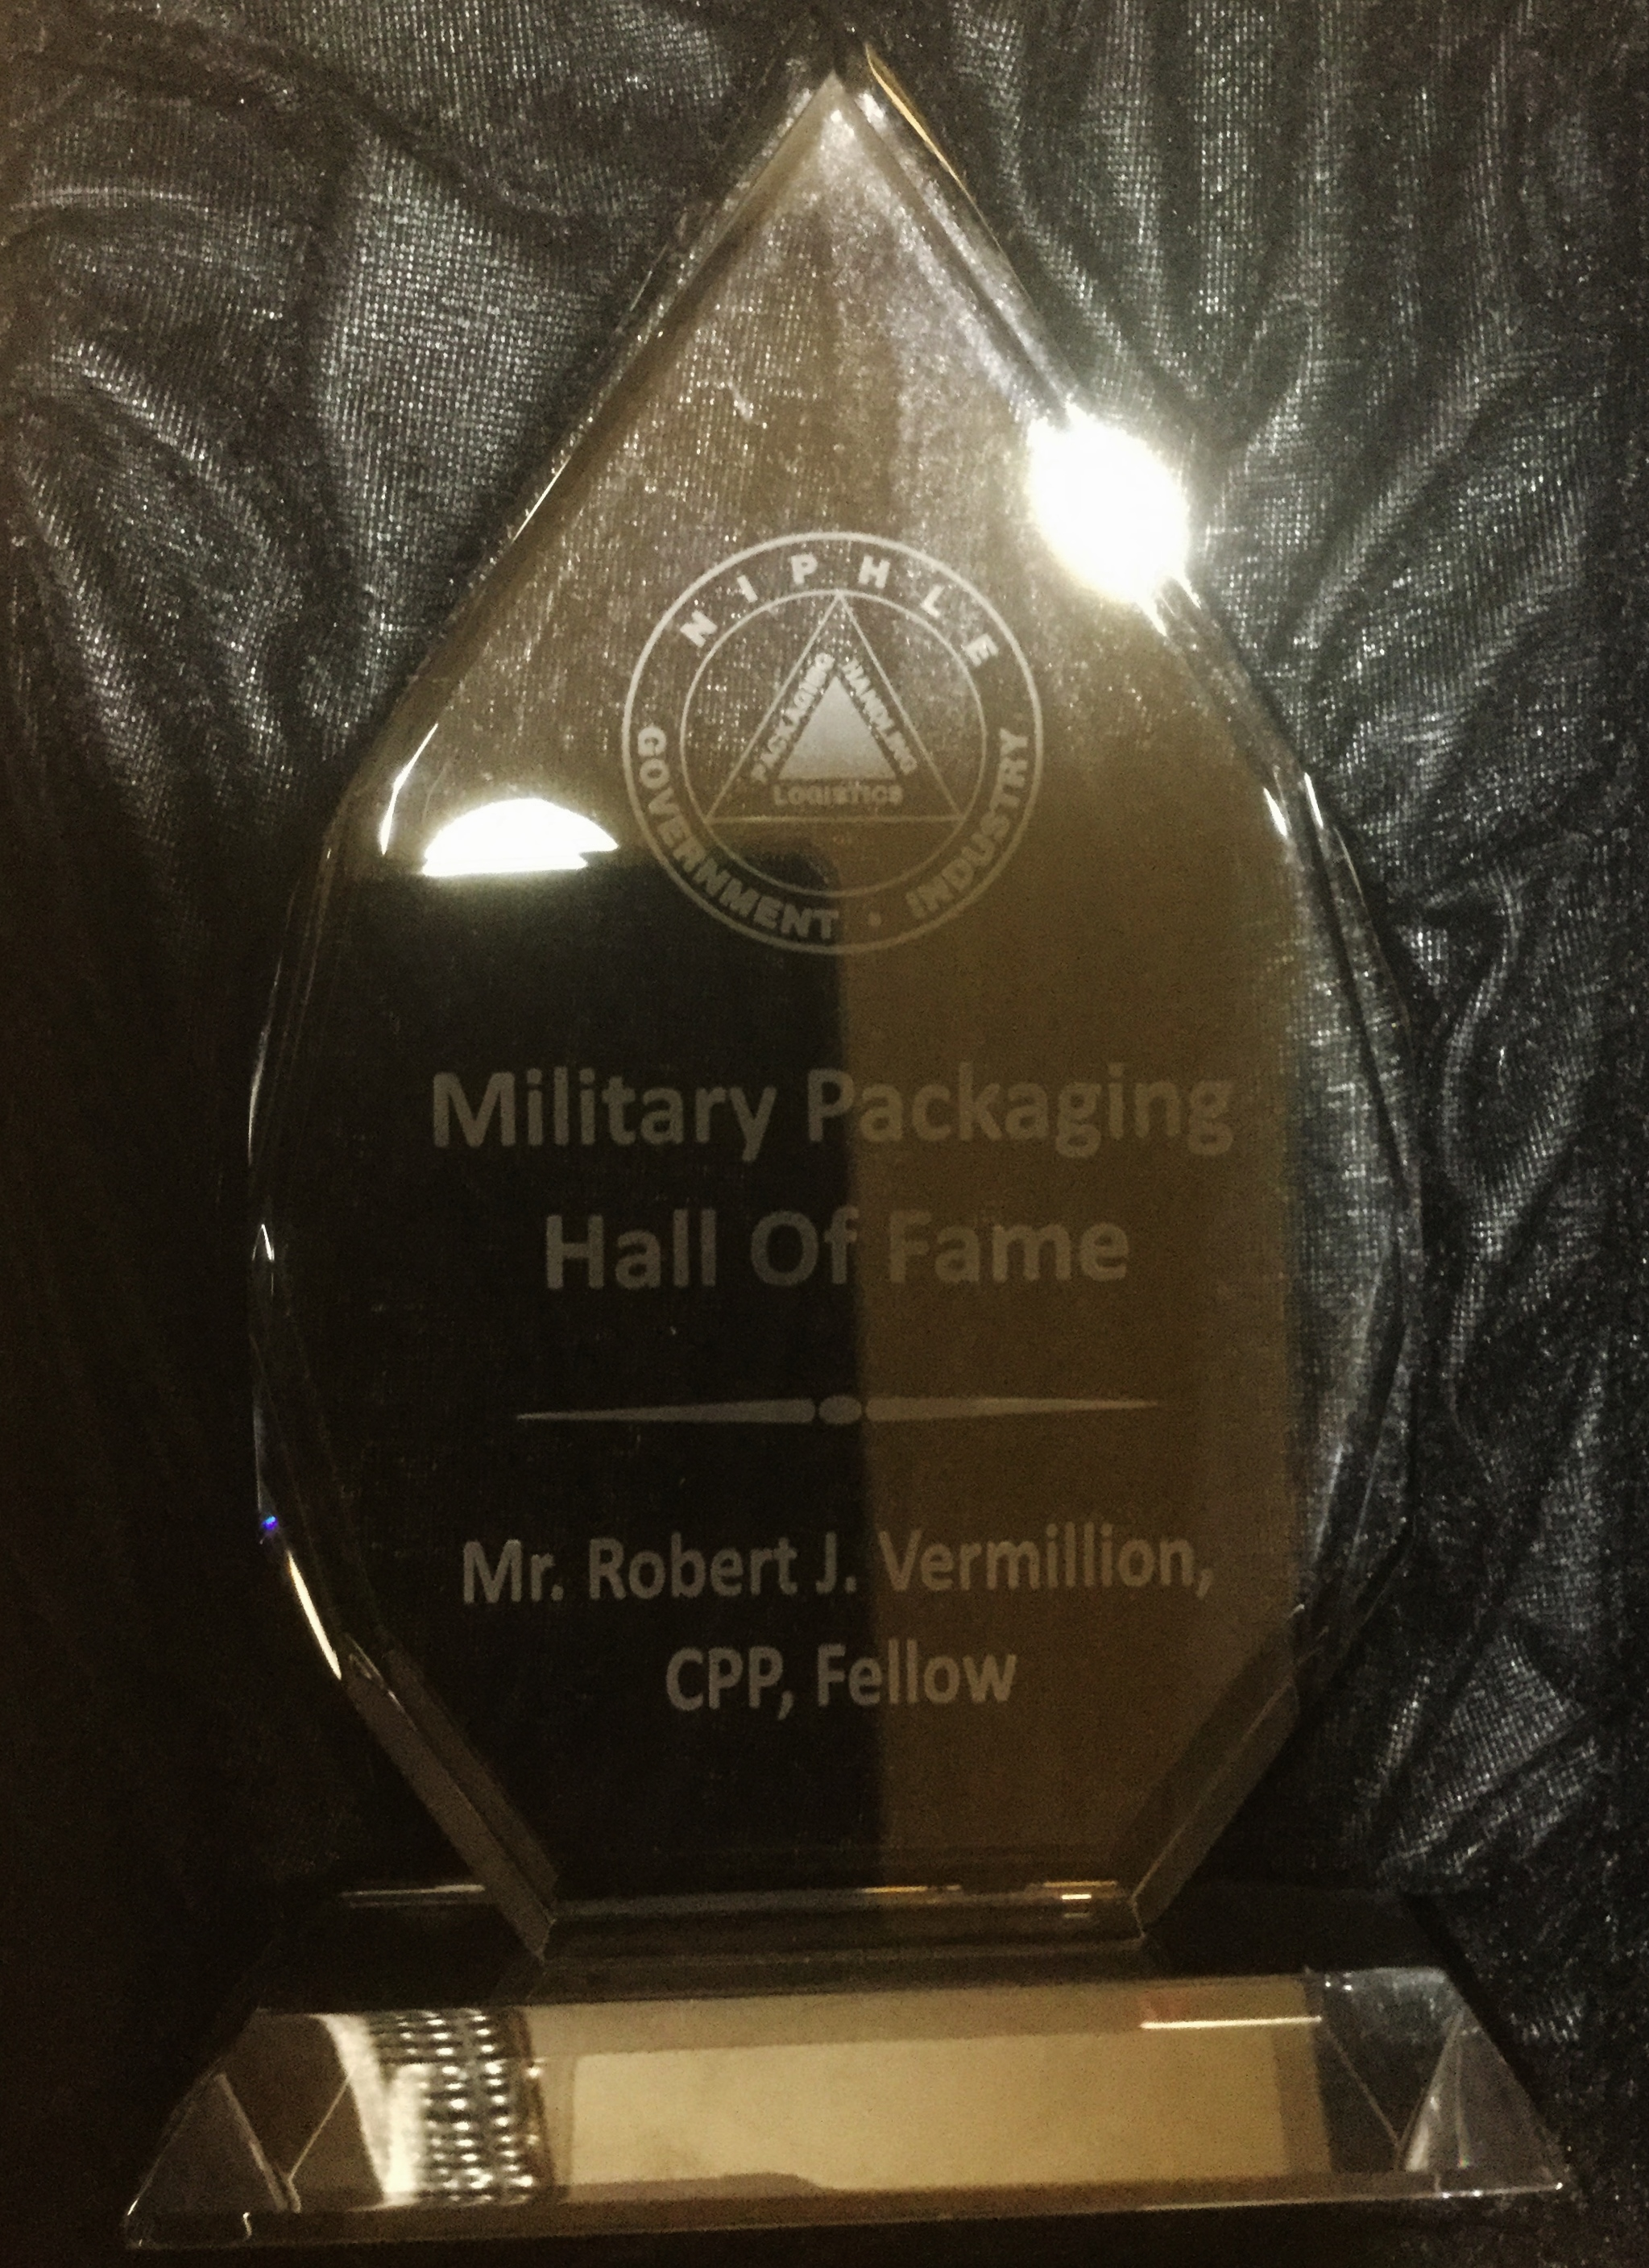 Military Packaging Hall of Fame